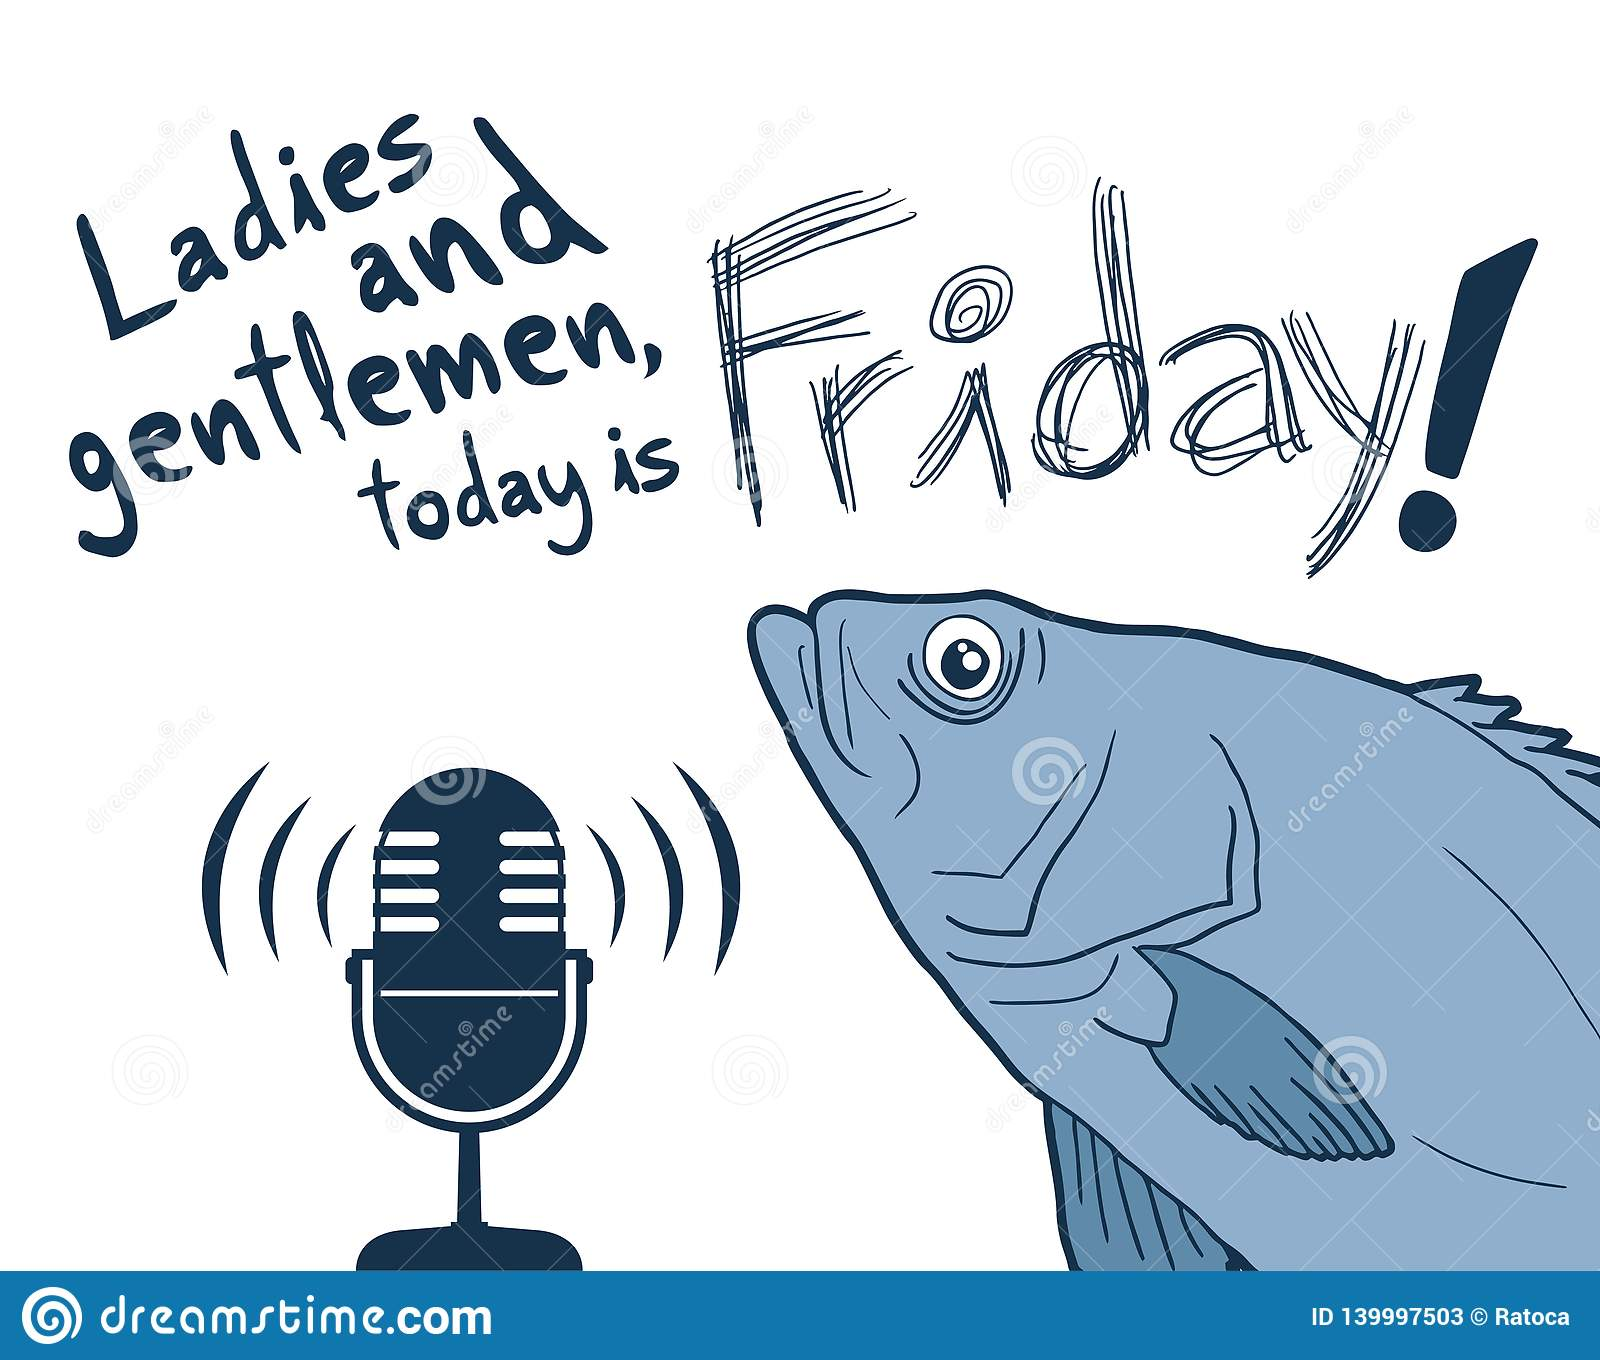 Fish And Funny Friday Message Design Stock Vector